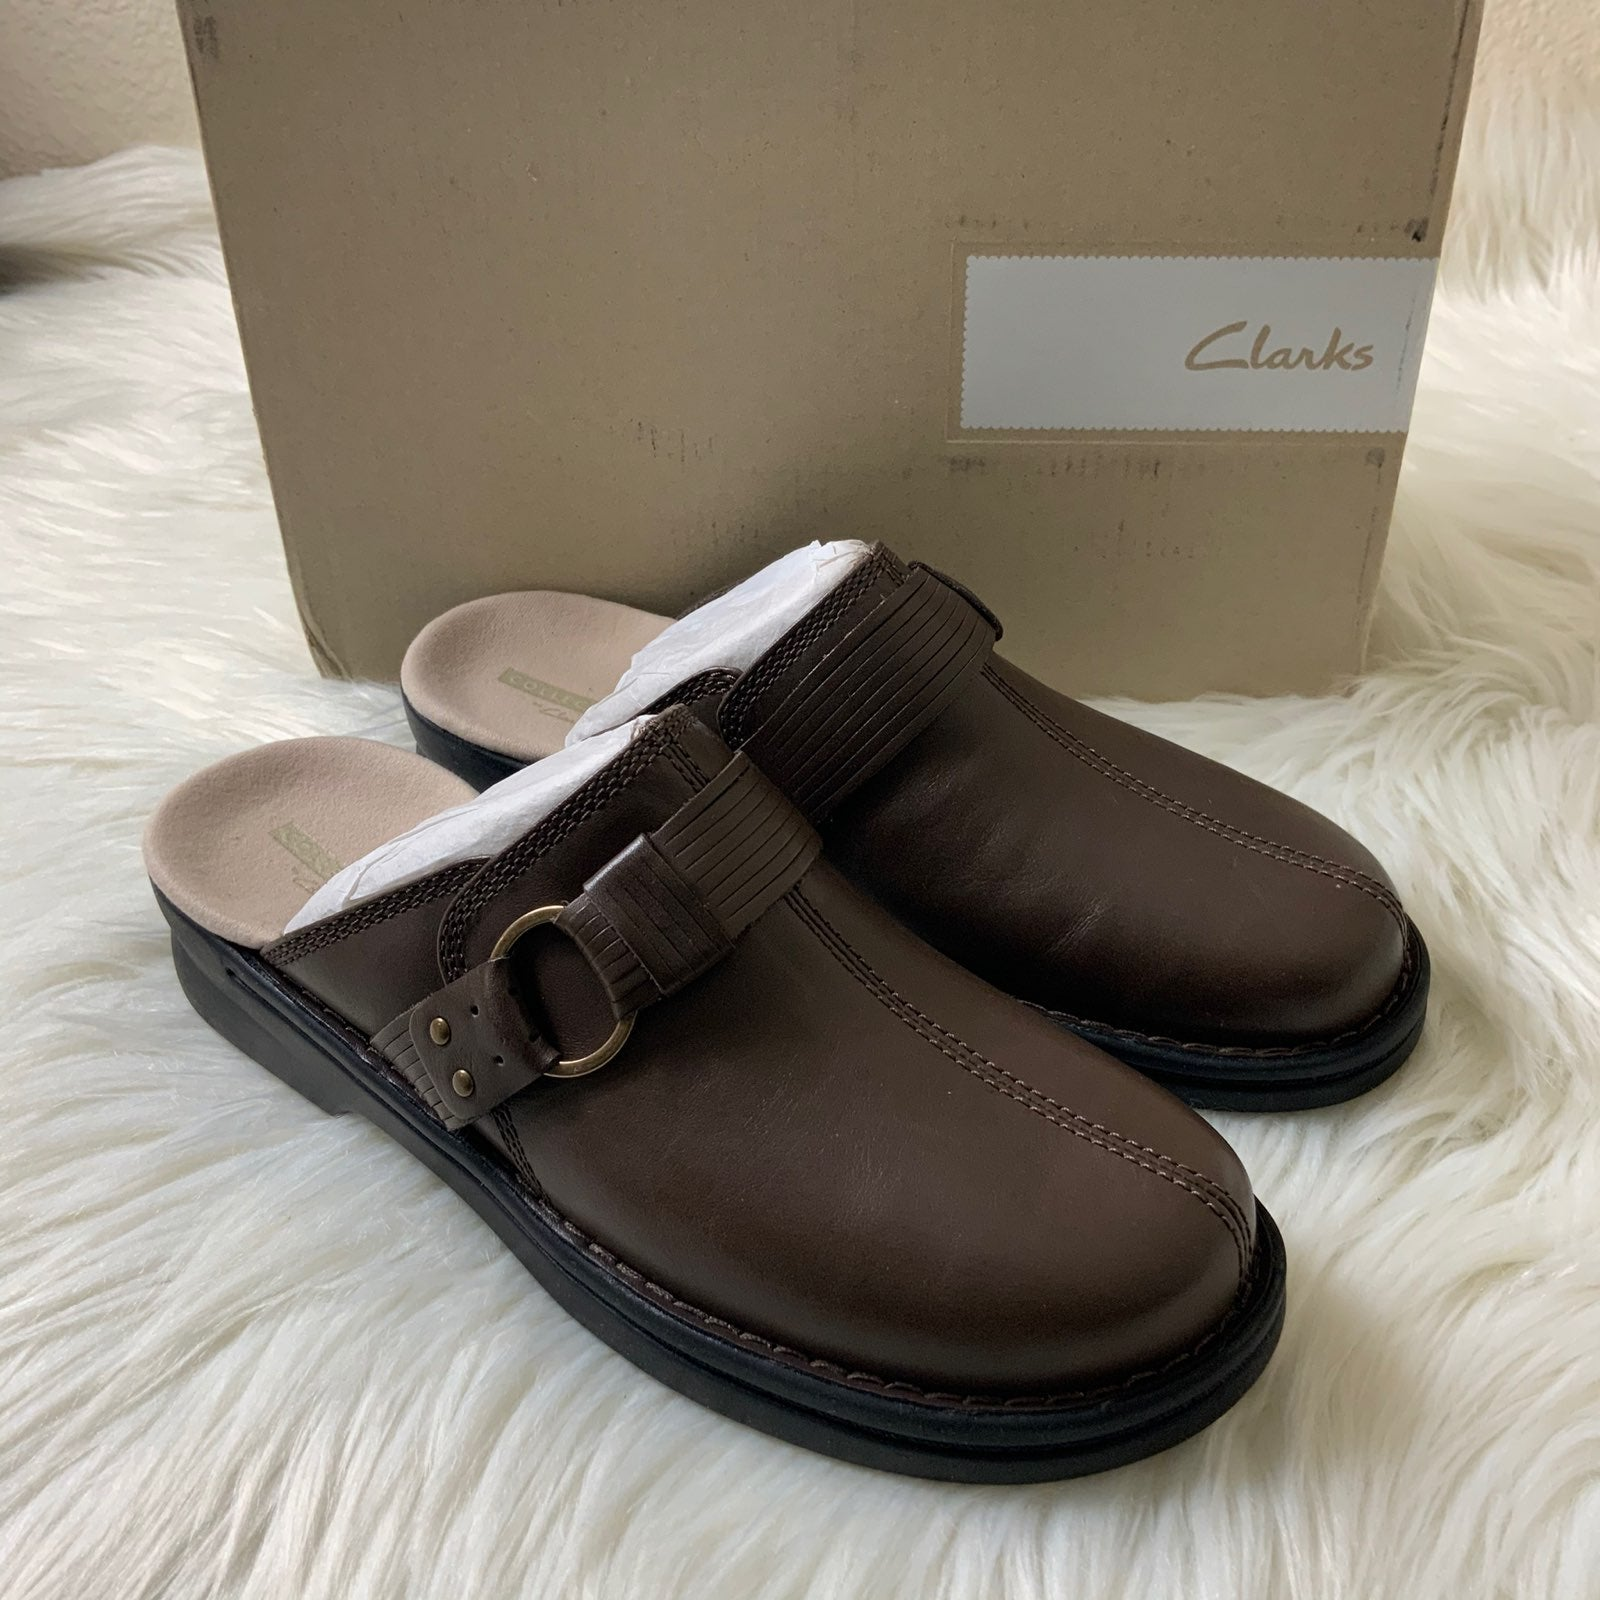 Clarks Leather Slip-On Clogs Size 7.5M